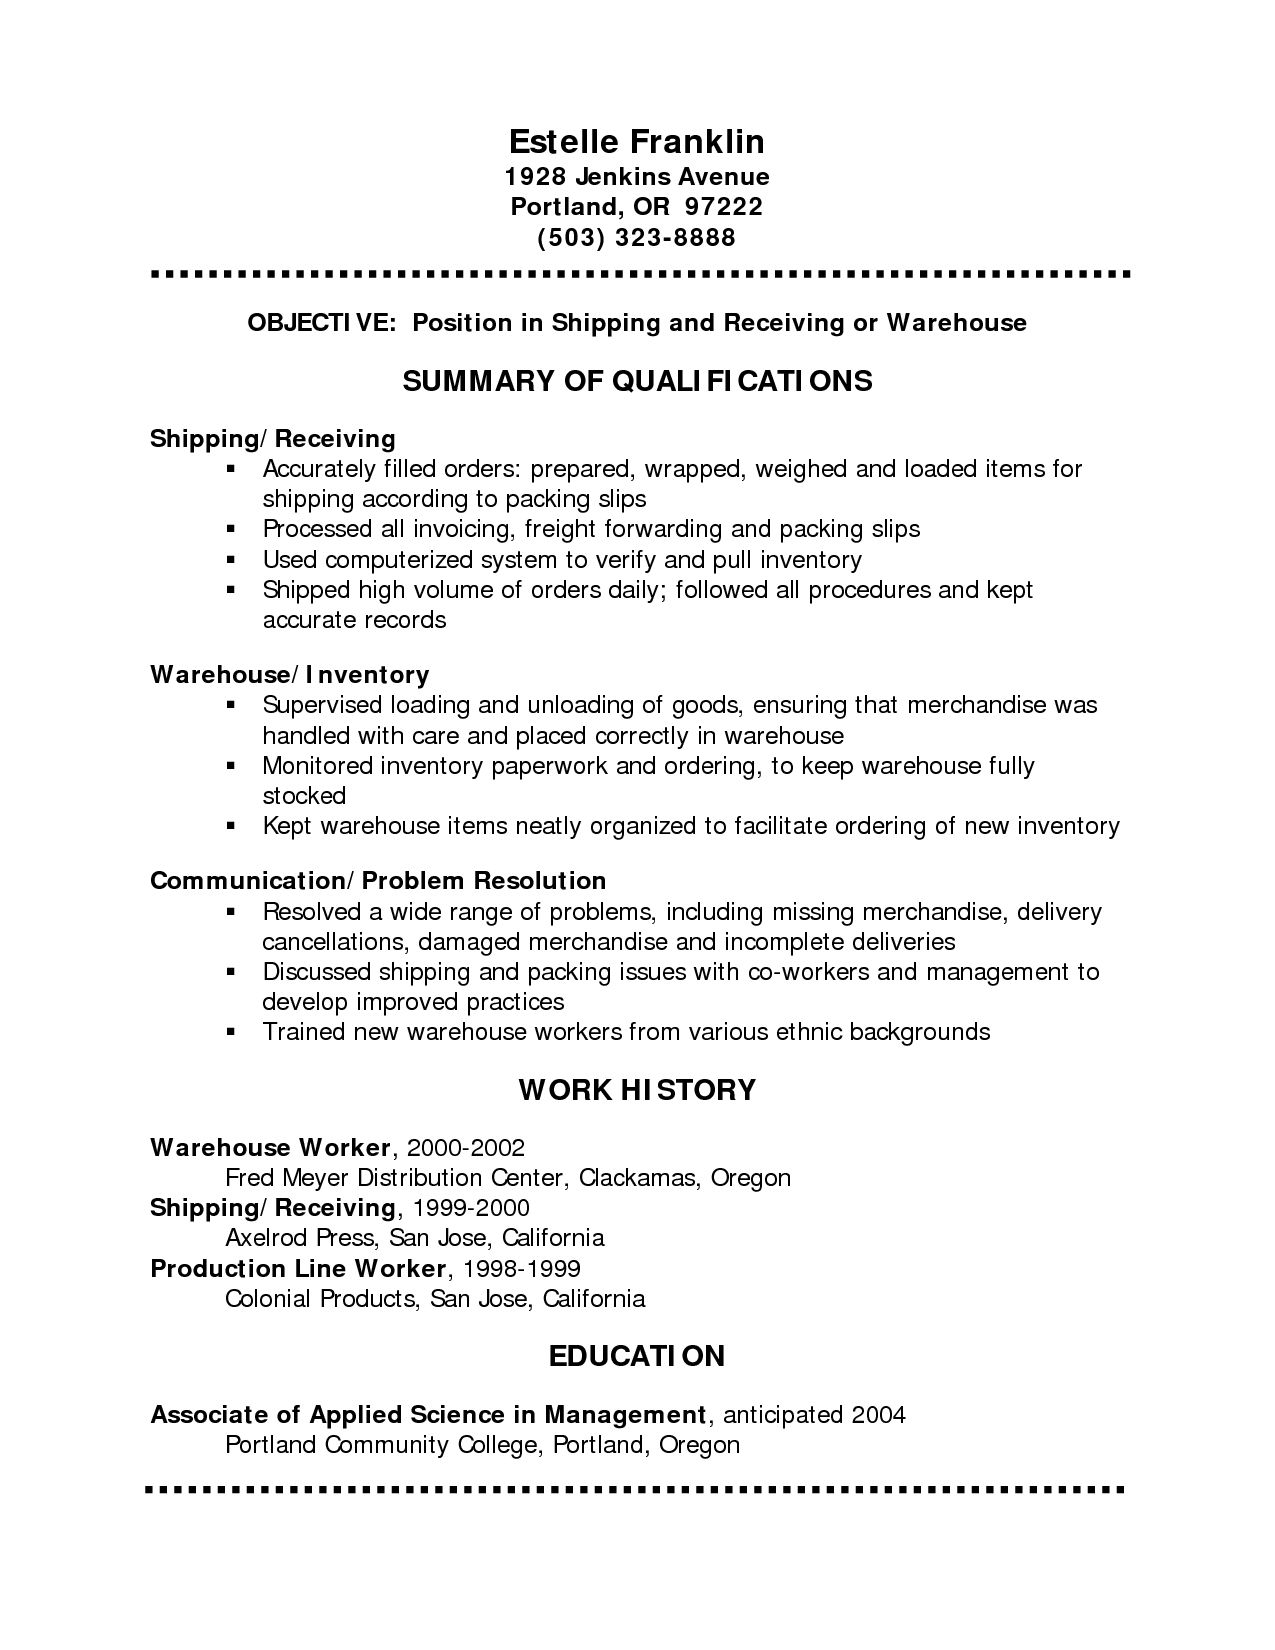 Free Examples Of Resumes Apa Resume Sample Computer Engineer Cover Letter Costume